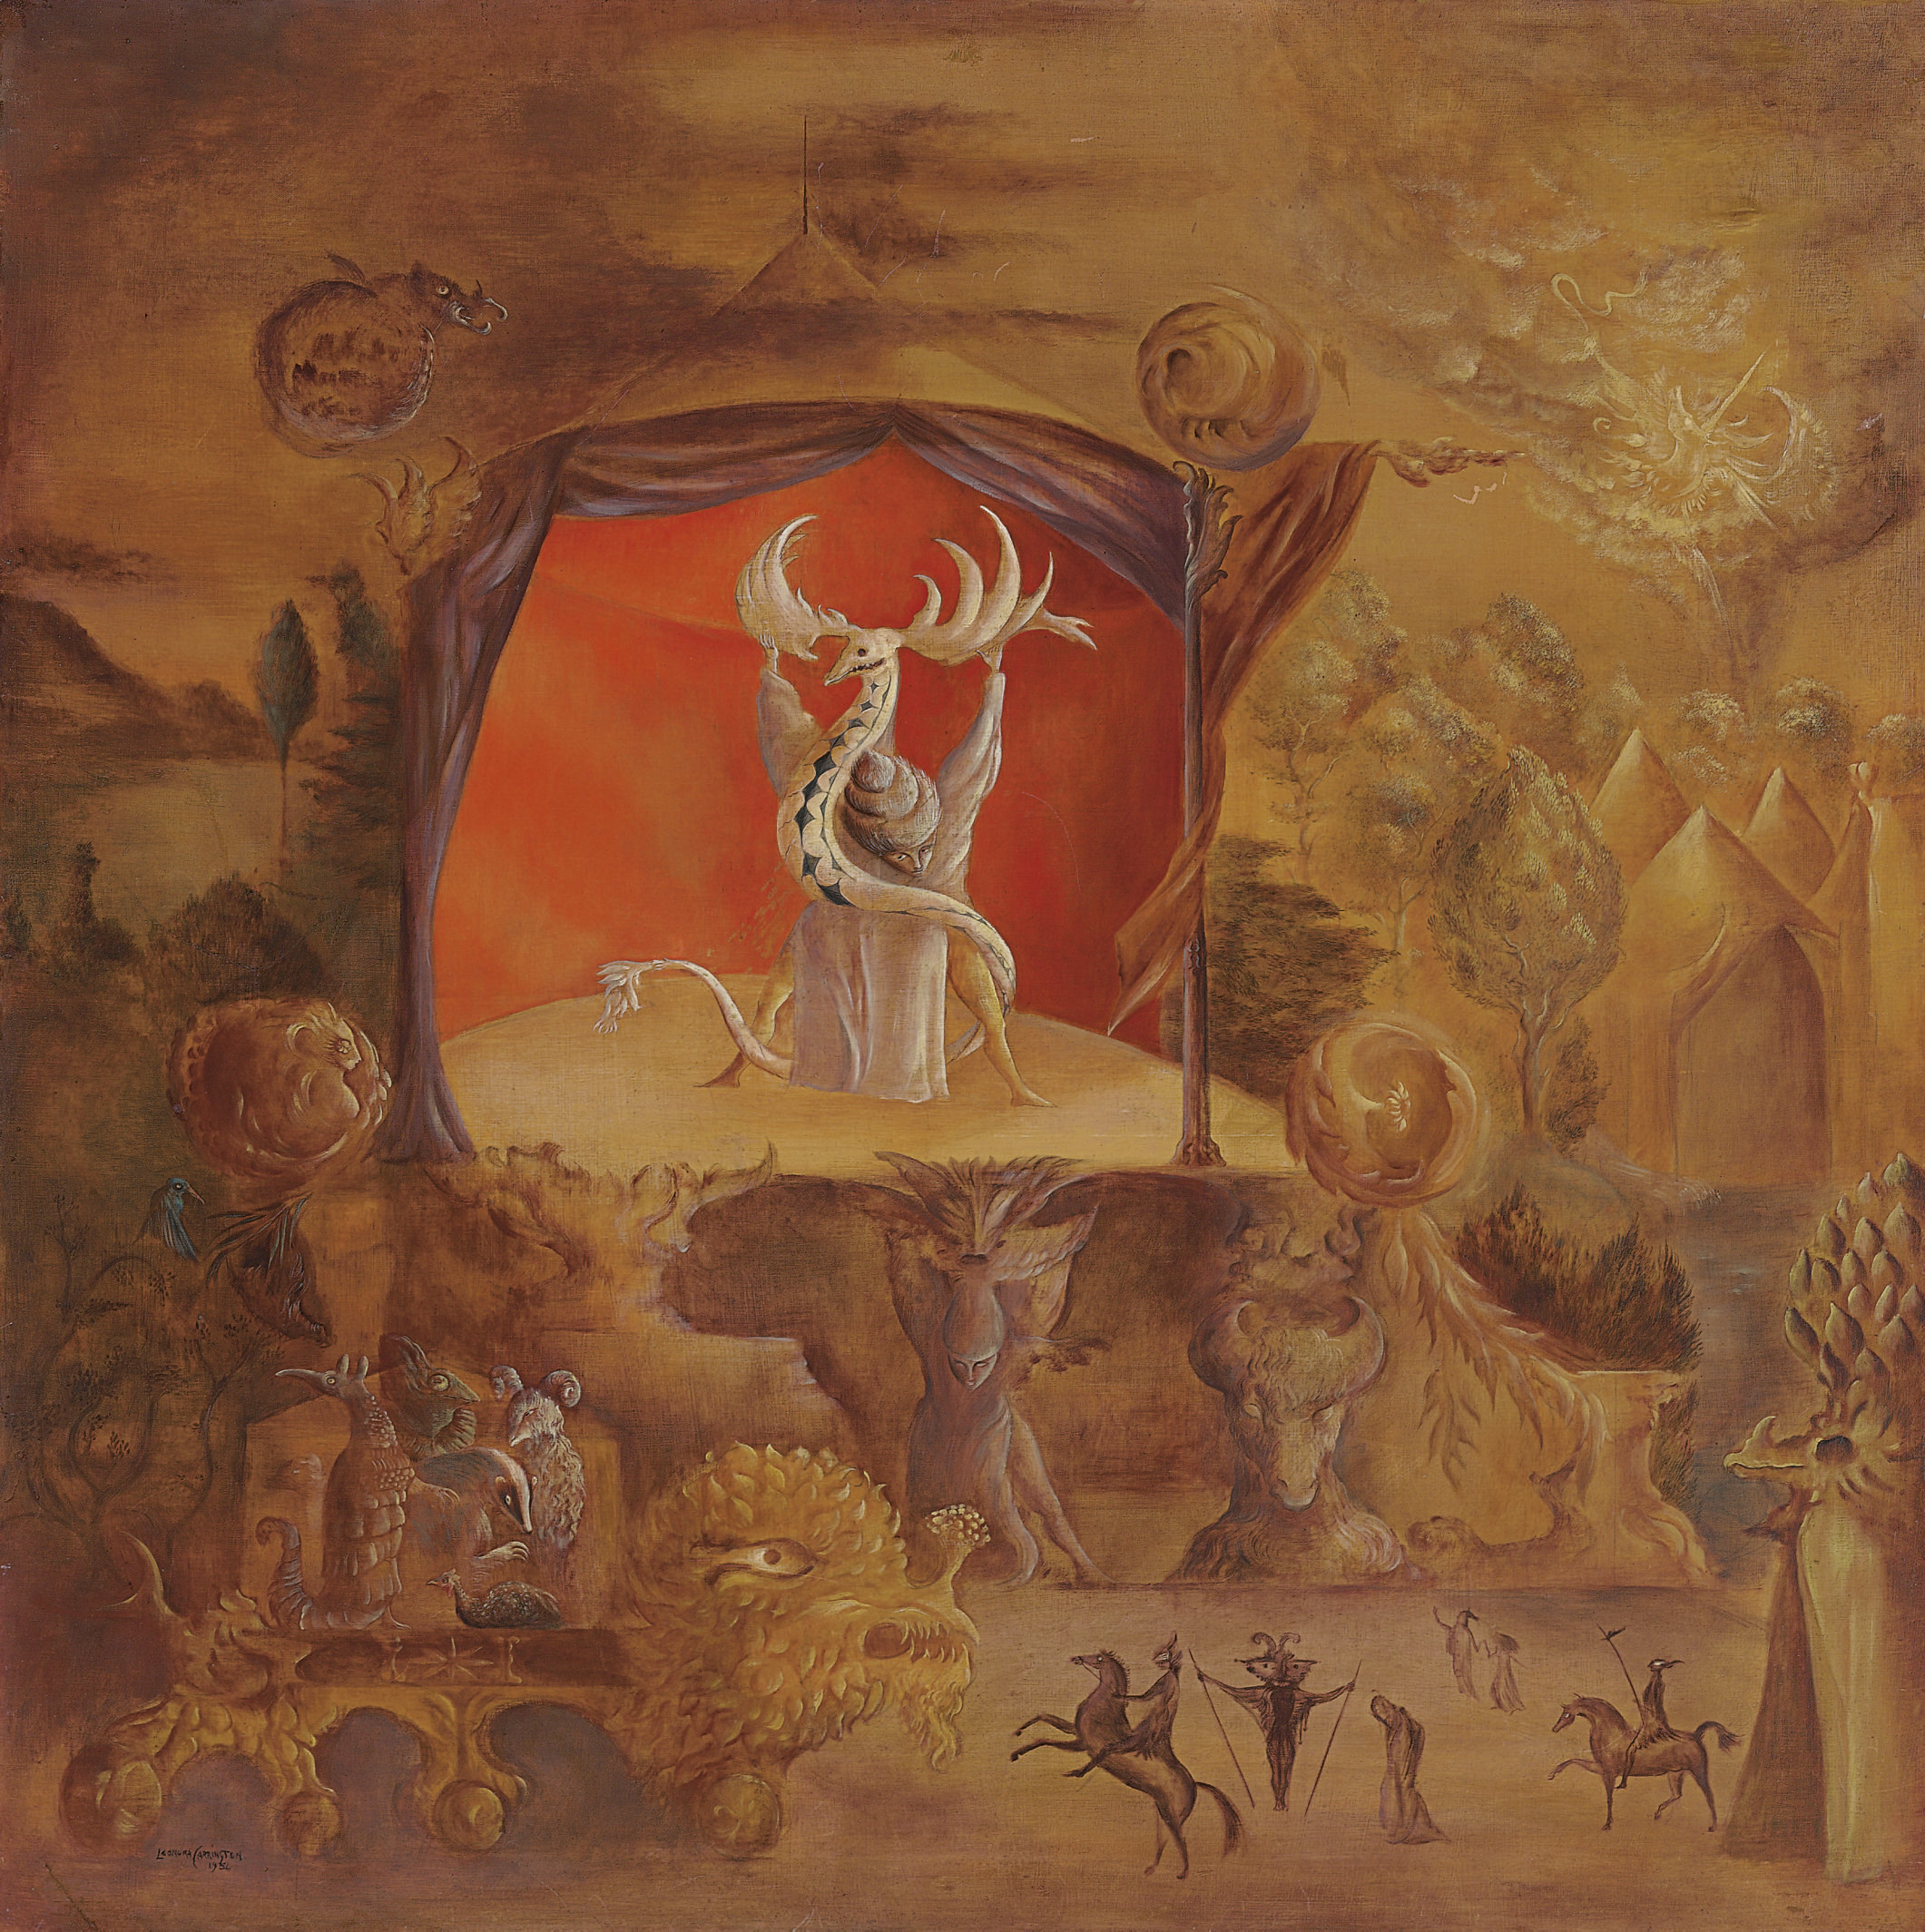 Leonora Carrington (English/Mexican b. 1917)